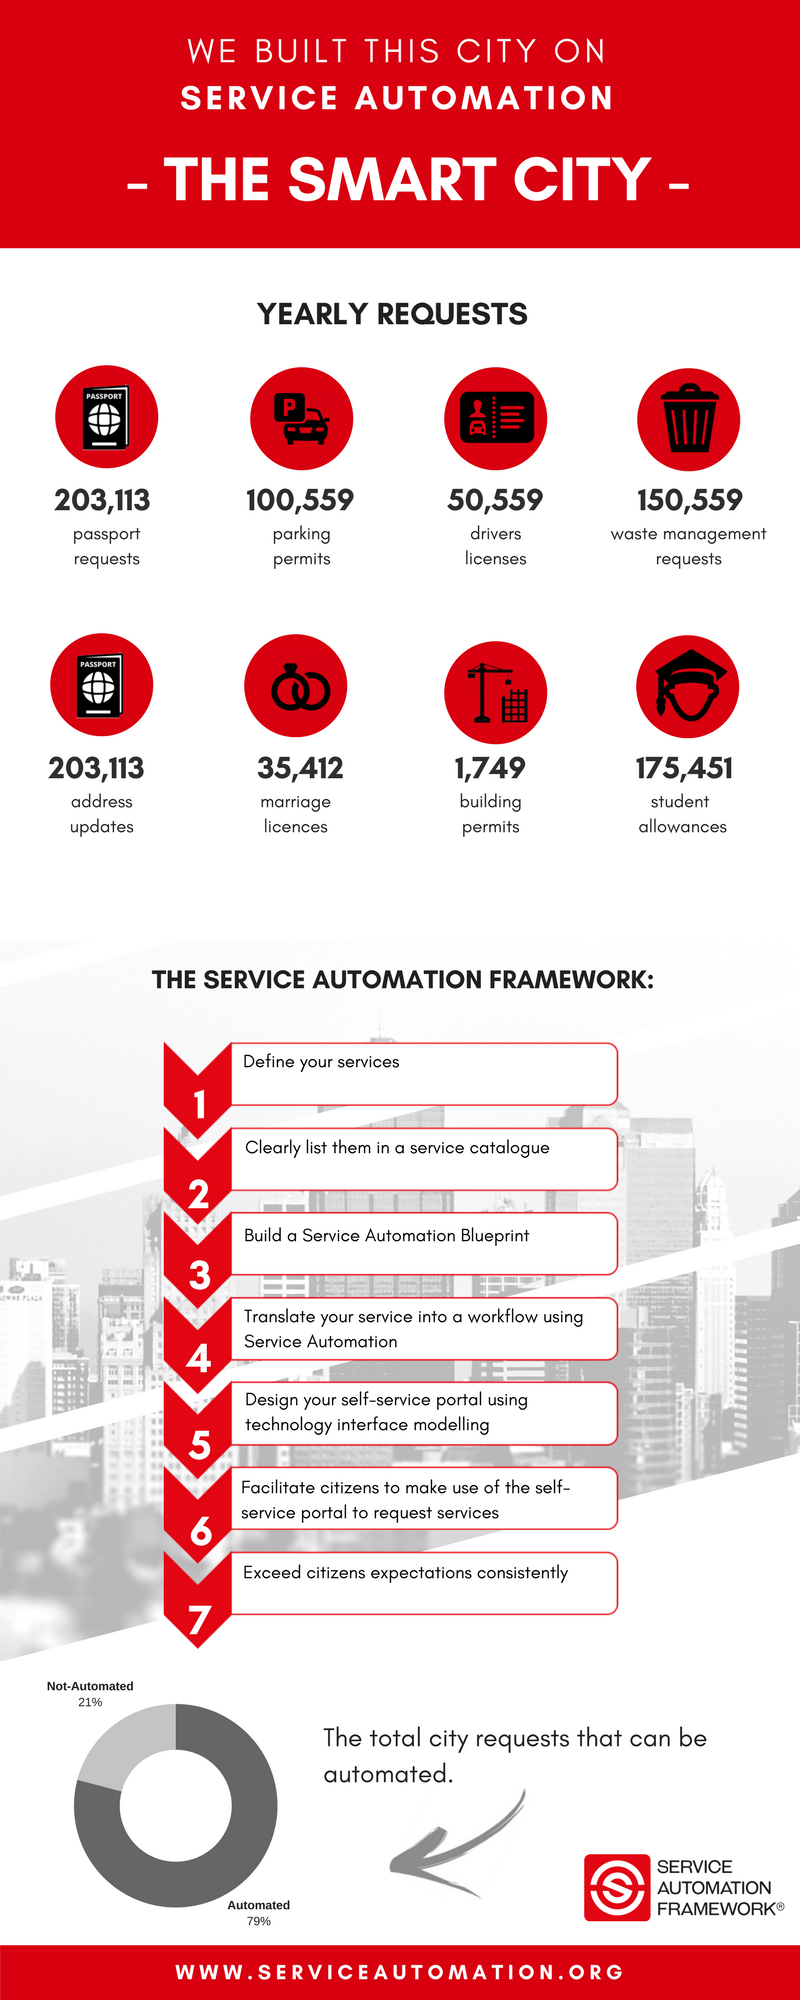 Smart Cities are built on Service Automation